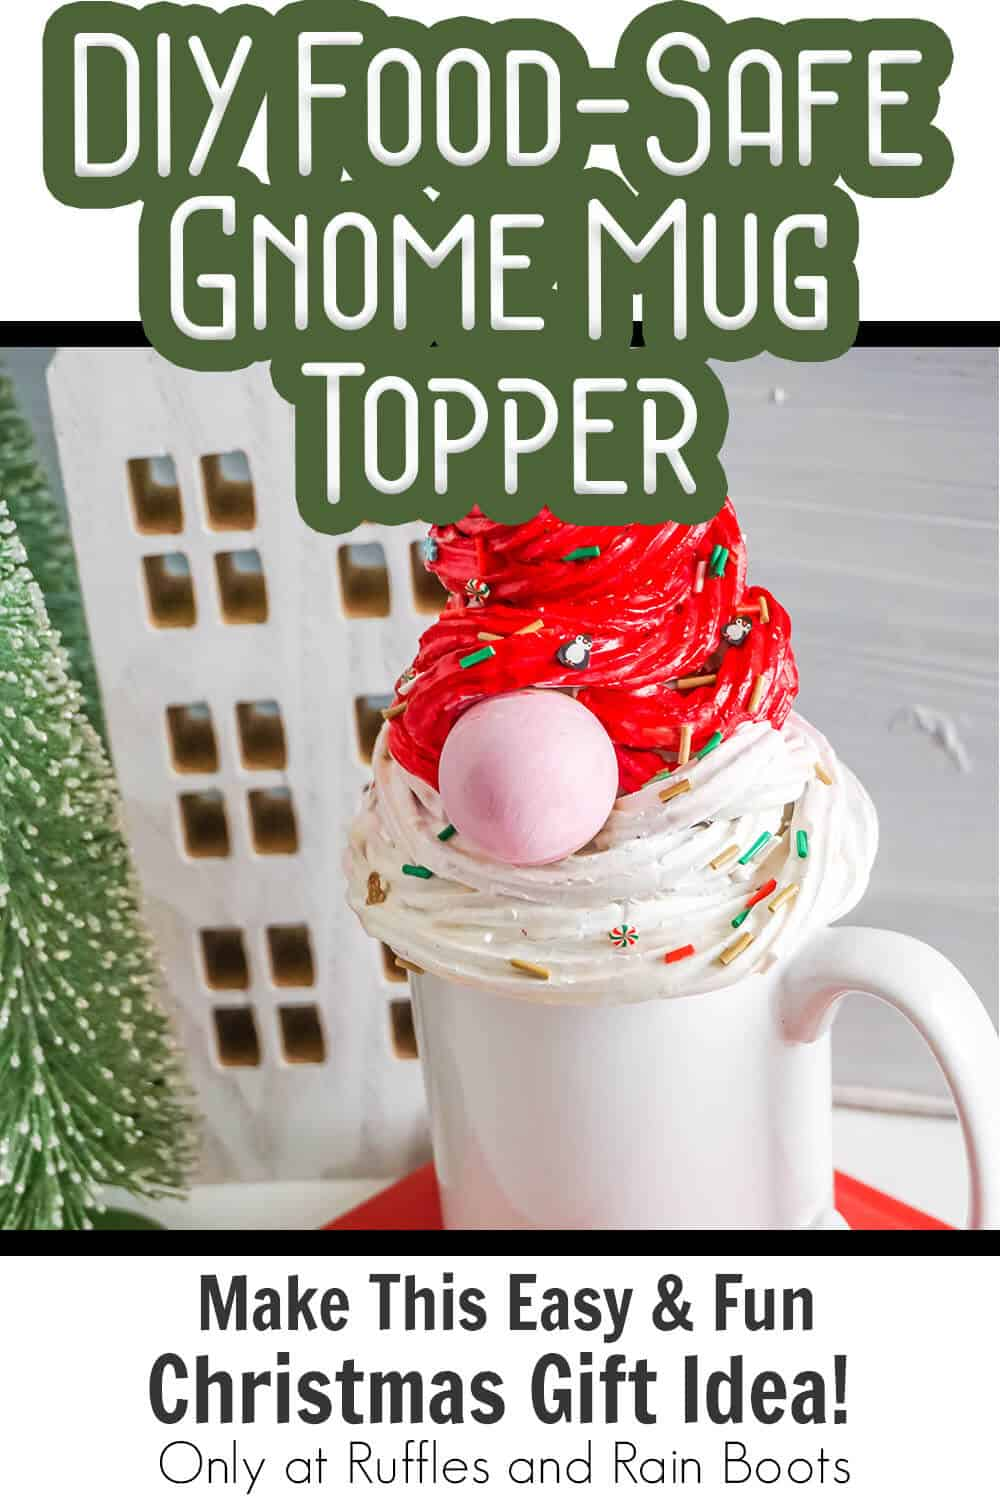 gnome mug topper made with food safe material with text which reads diy food-safe gnome mug topper make this easy & fun christmas gift idea!